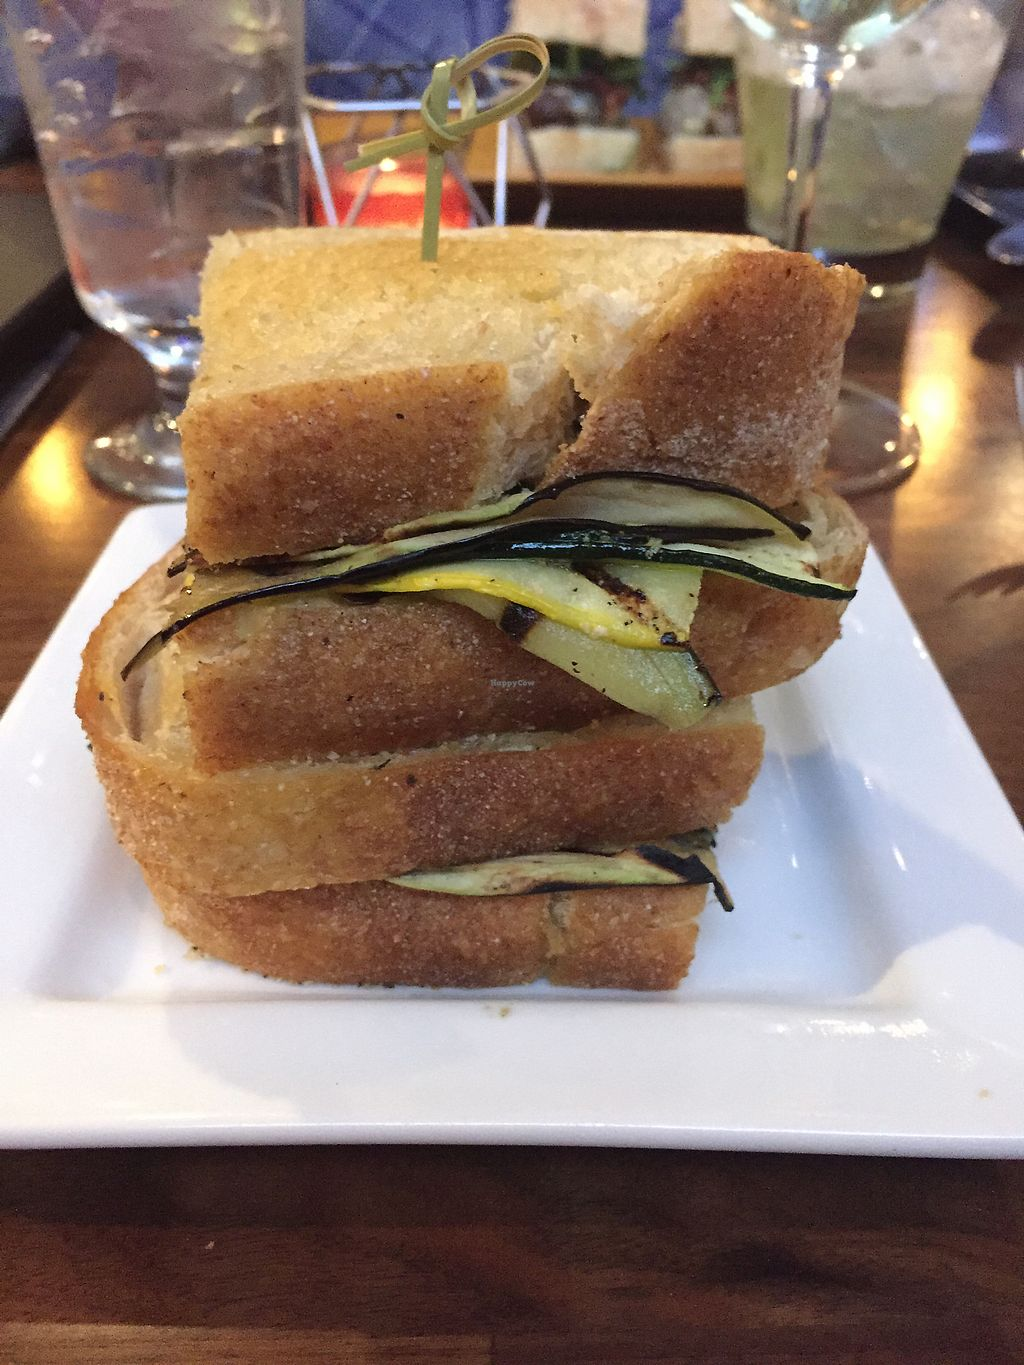 """Photo of Proof  by <a href=""""/members/profile/haleylikesspinach"""">haleylikesspinach</a> <br/>ratatouille sandwich  <br/> April 24, 2018  - <a href='/contact/abuse/image/117101/390490'>Report</a>"""